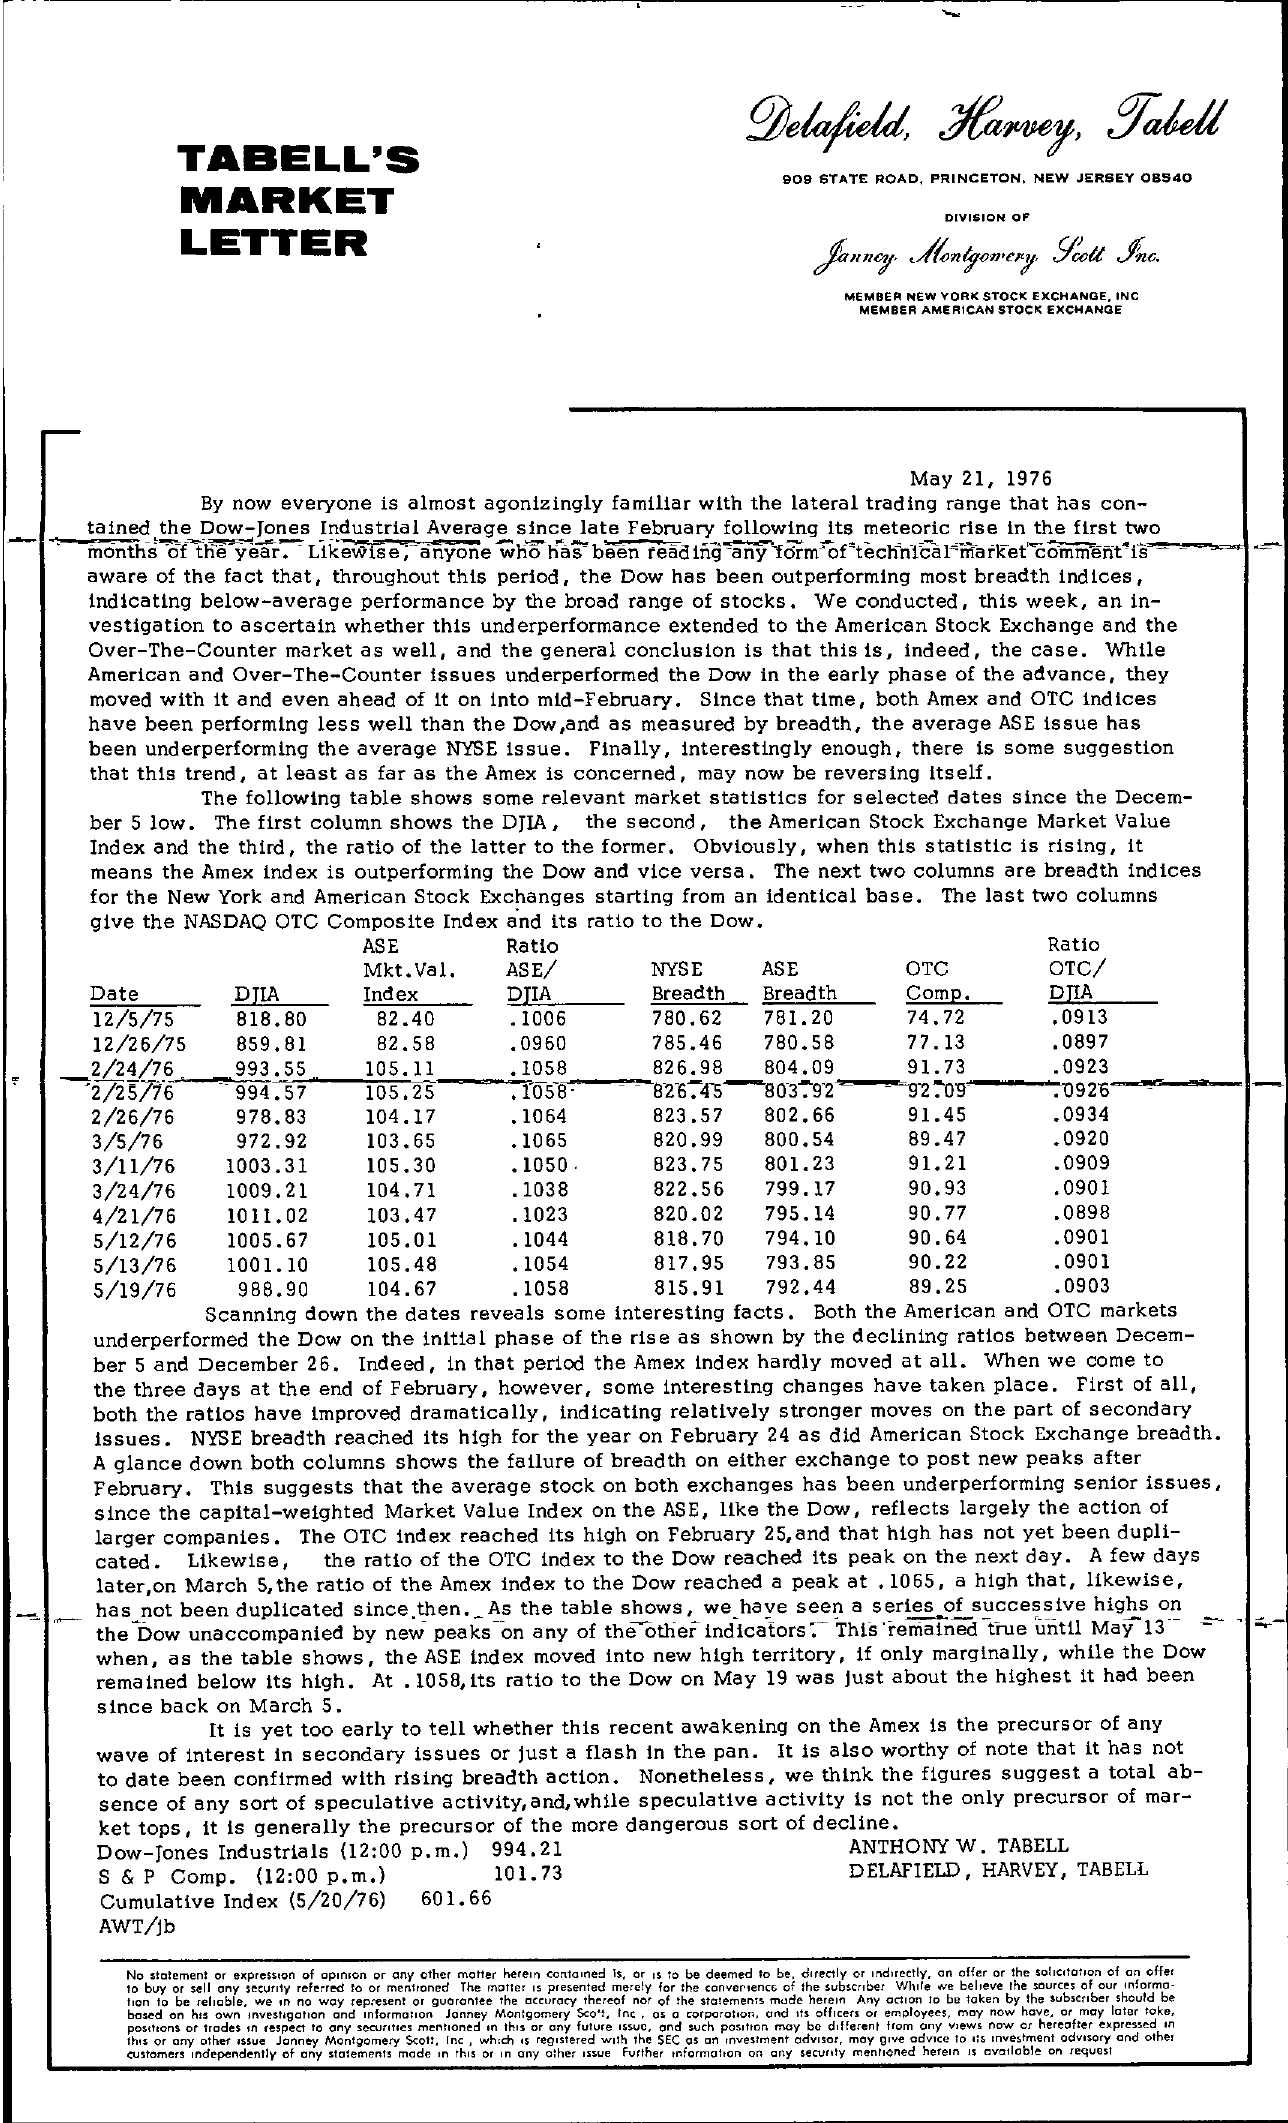 Tabell's Market Letter - May 21, 1976